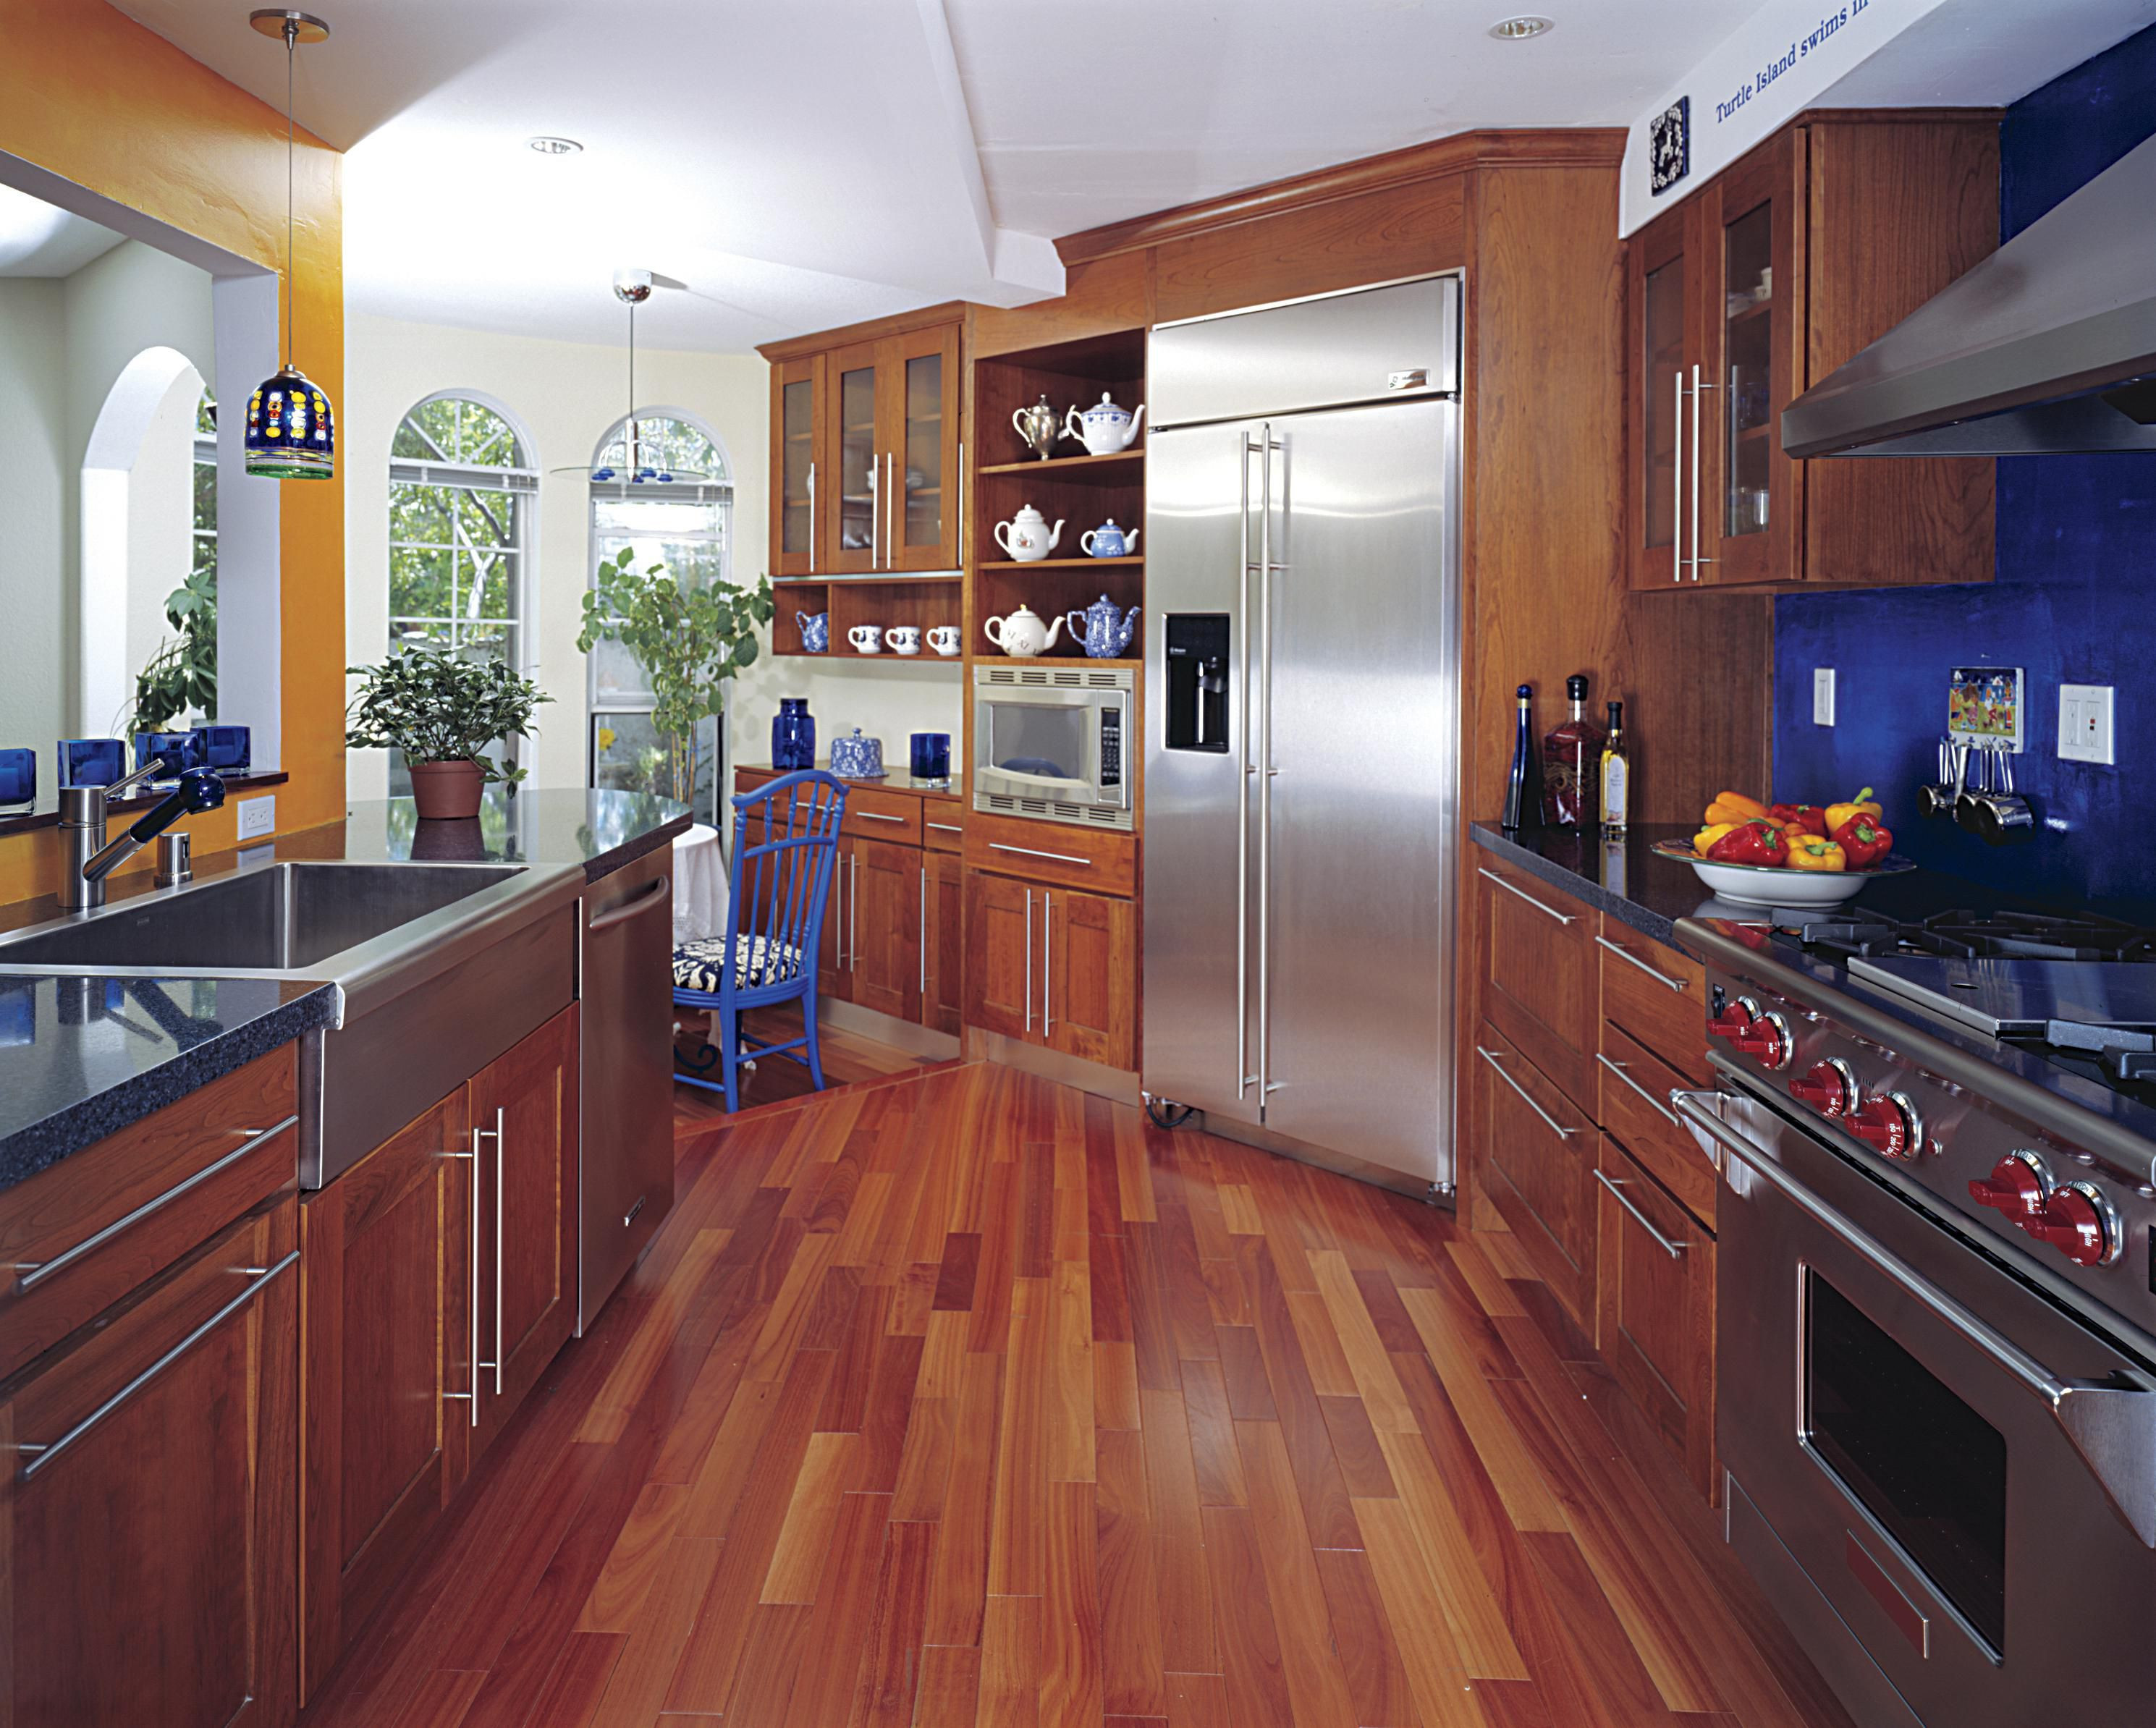 can i put hardwood floor in basement of hardwood floor in a kitchen is this allowed with 186828472 56a49f3a5f9b58b7d0d7e142